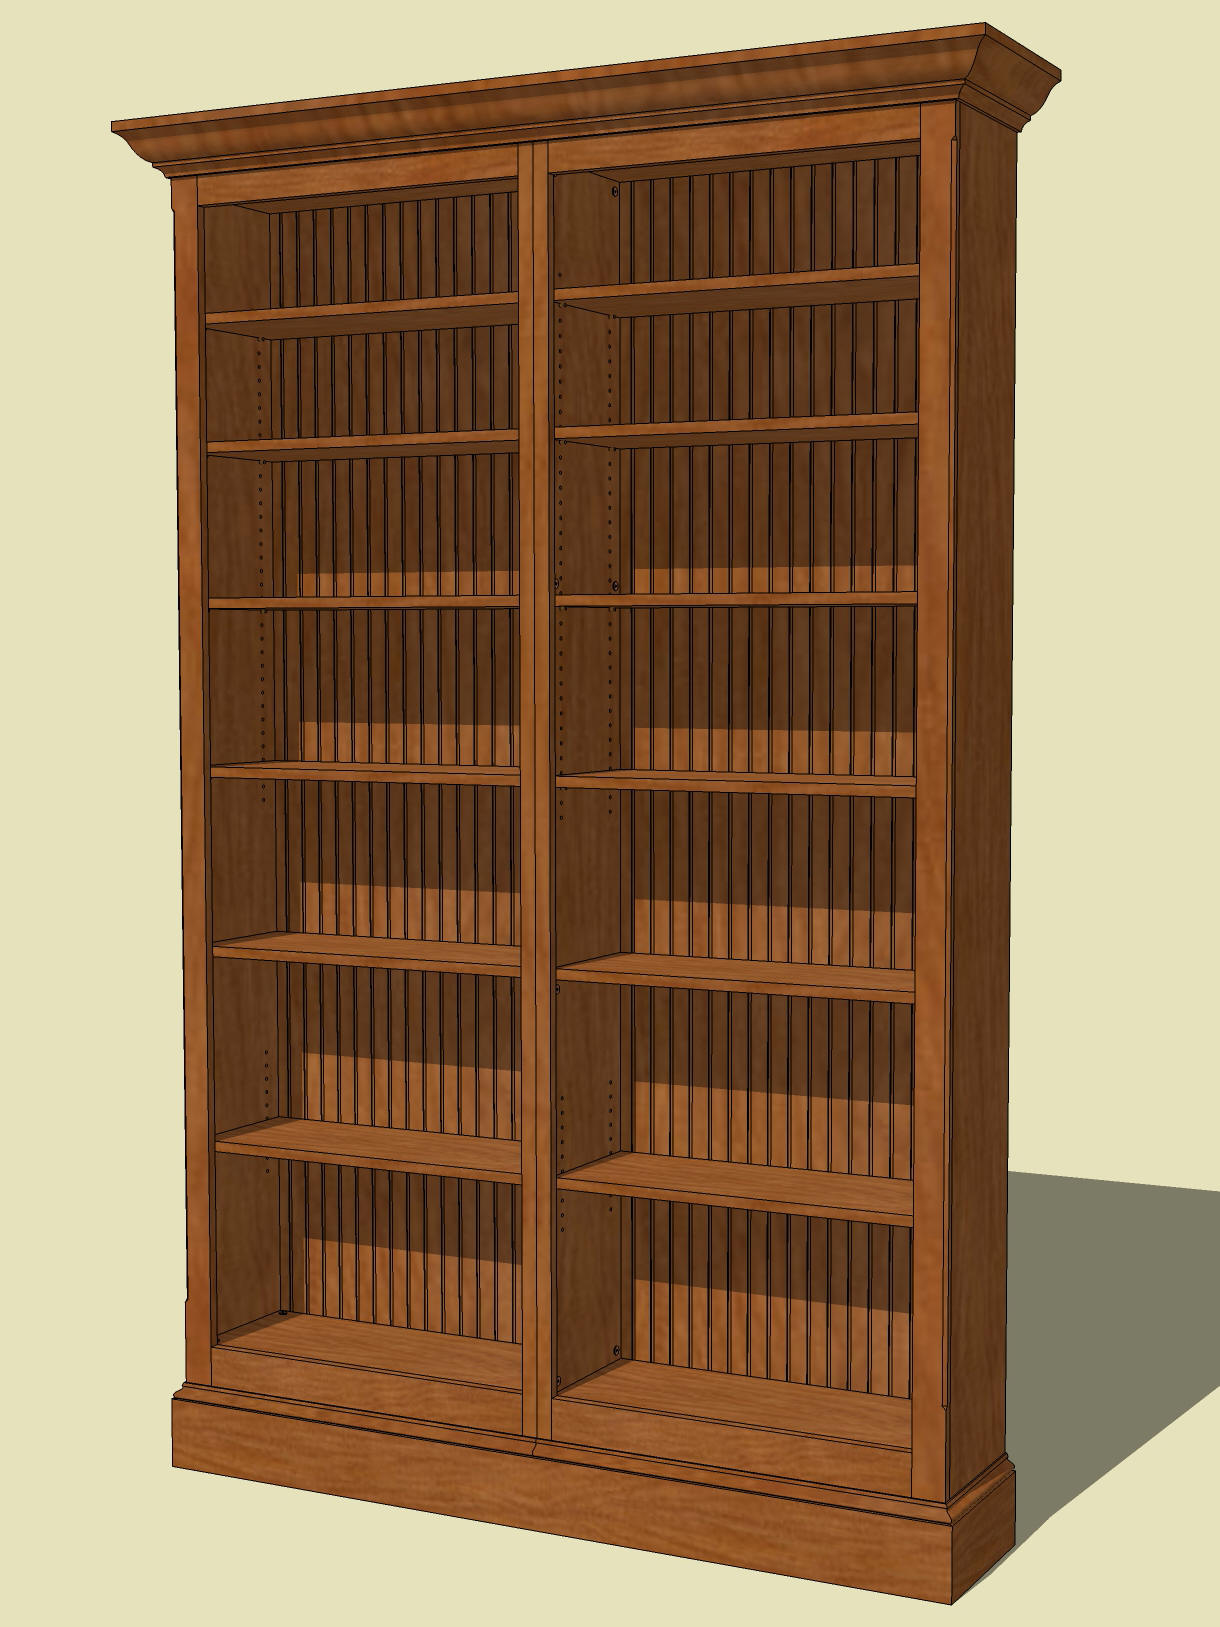 My SketchUp Models | Jeff Branch Woodworking